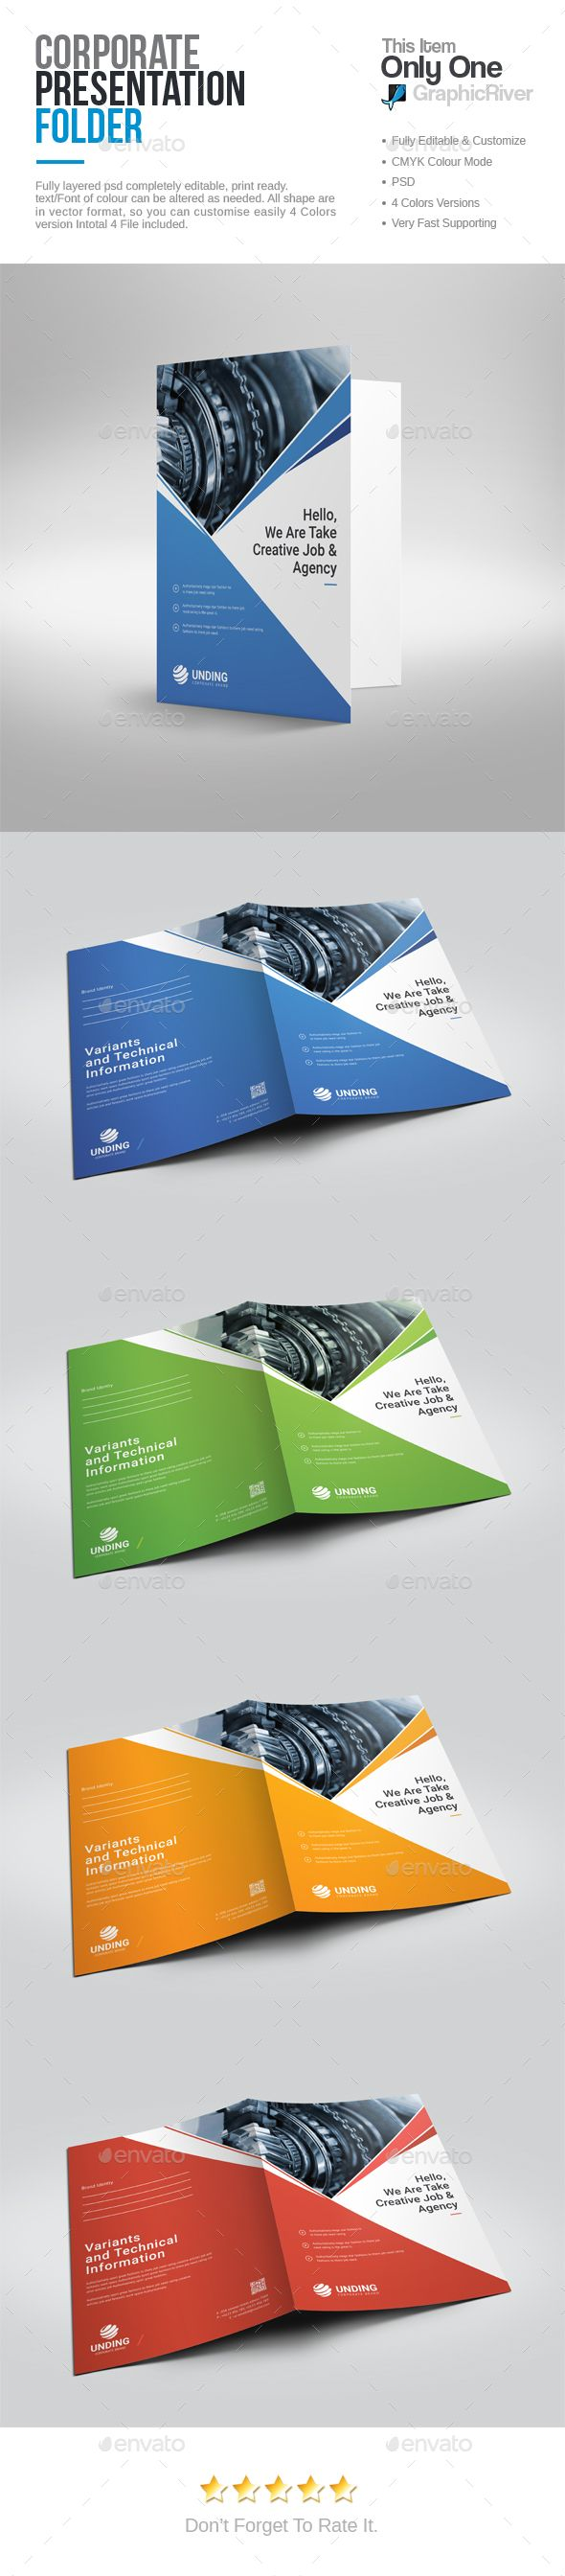 61 best presentation folders images on pinterest | presentation, Presentation templates